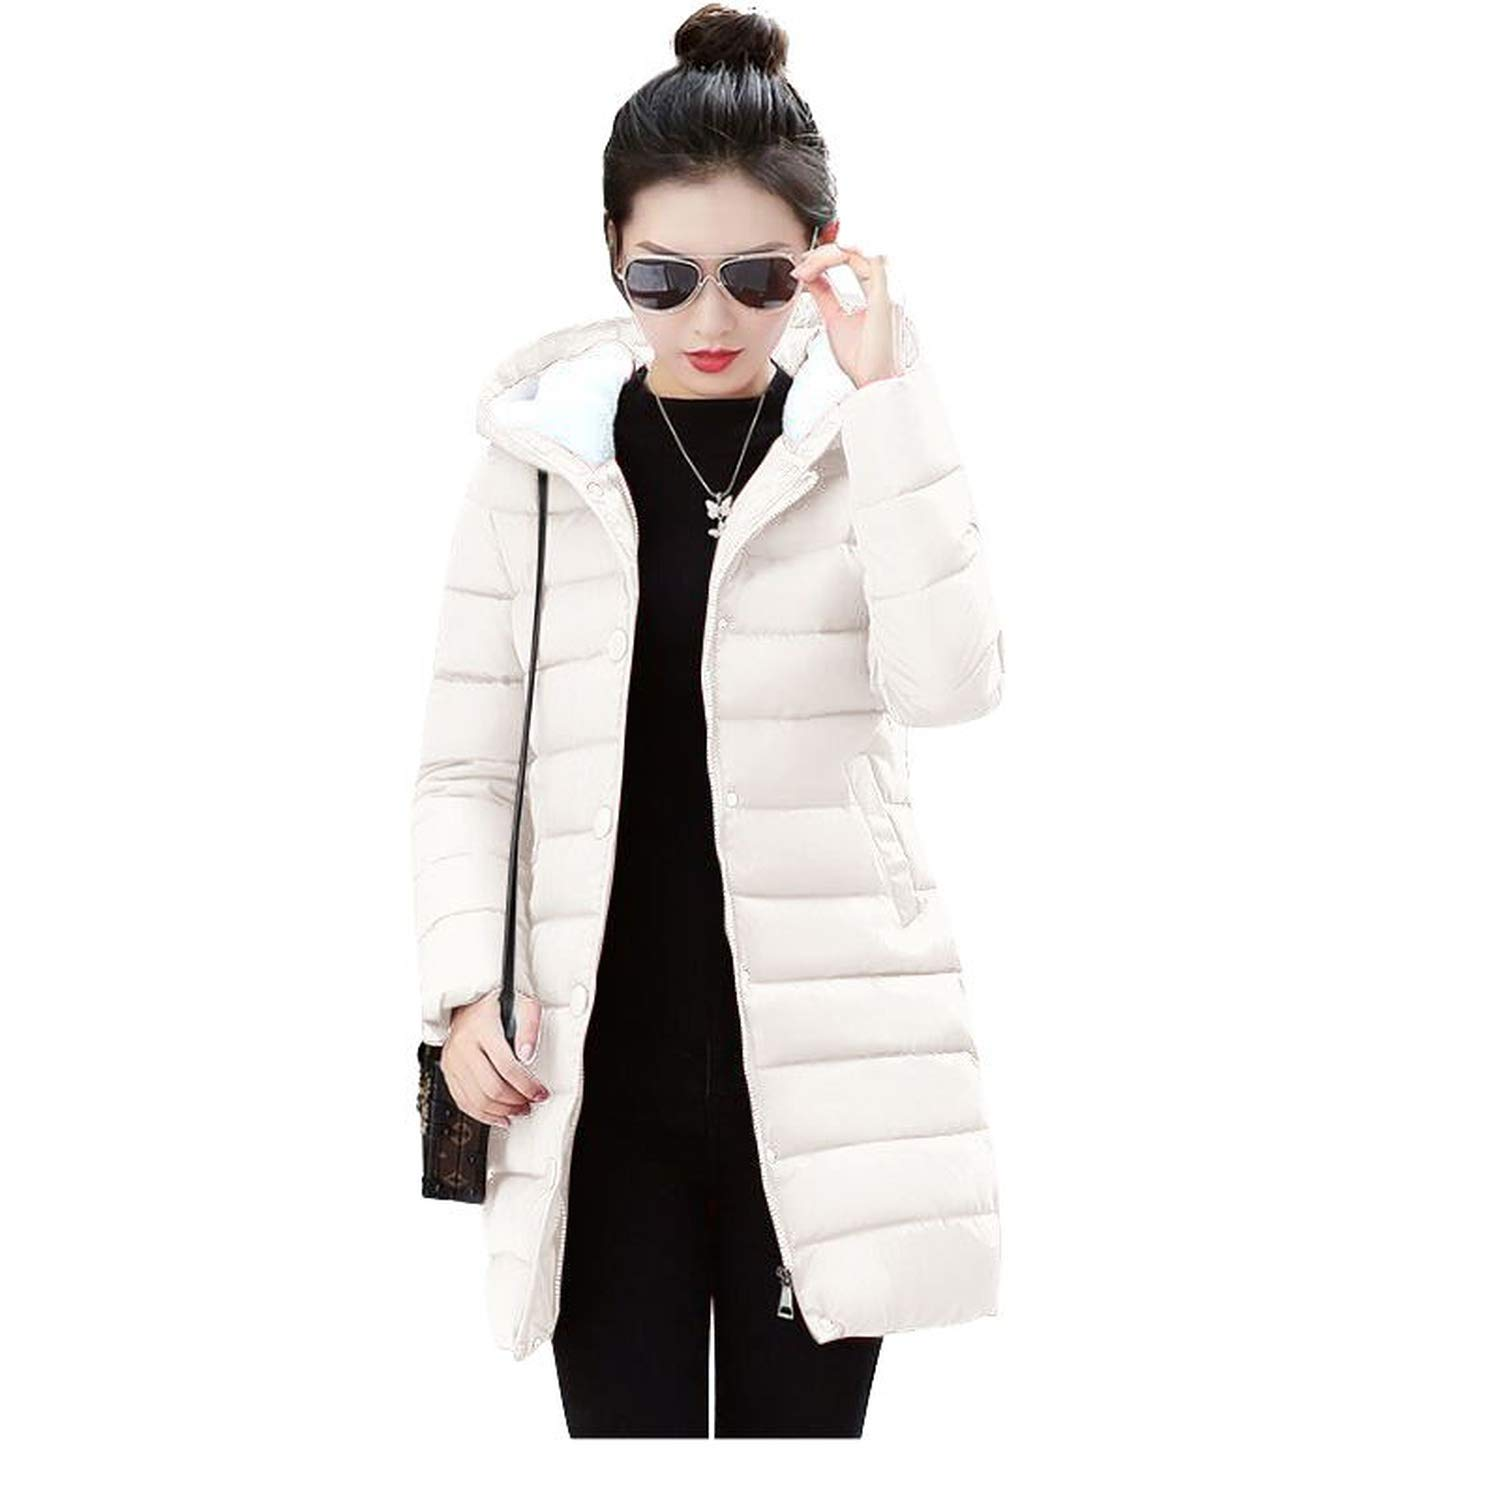 Beige Ladies Fashion Coat Winter Jacket Women Outerwear Warm Wadded Jacket Padded Parka